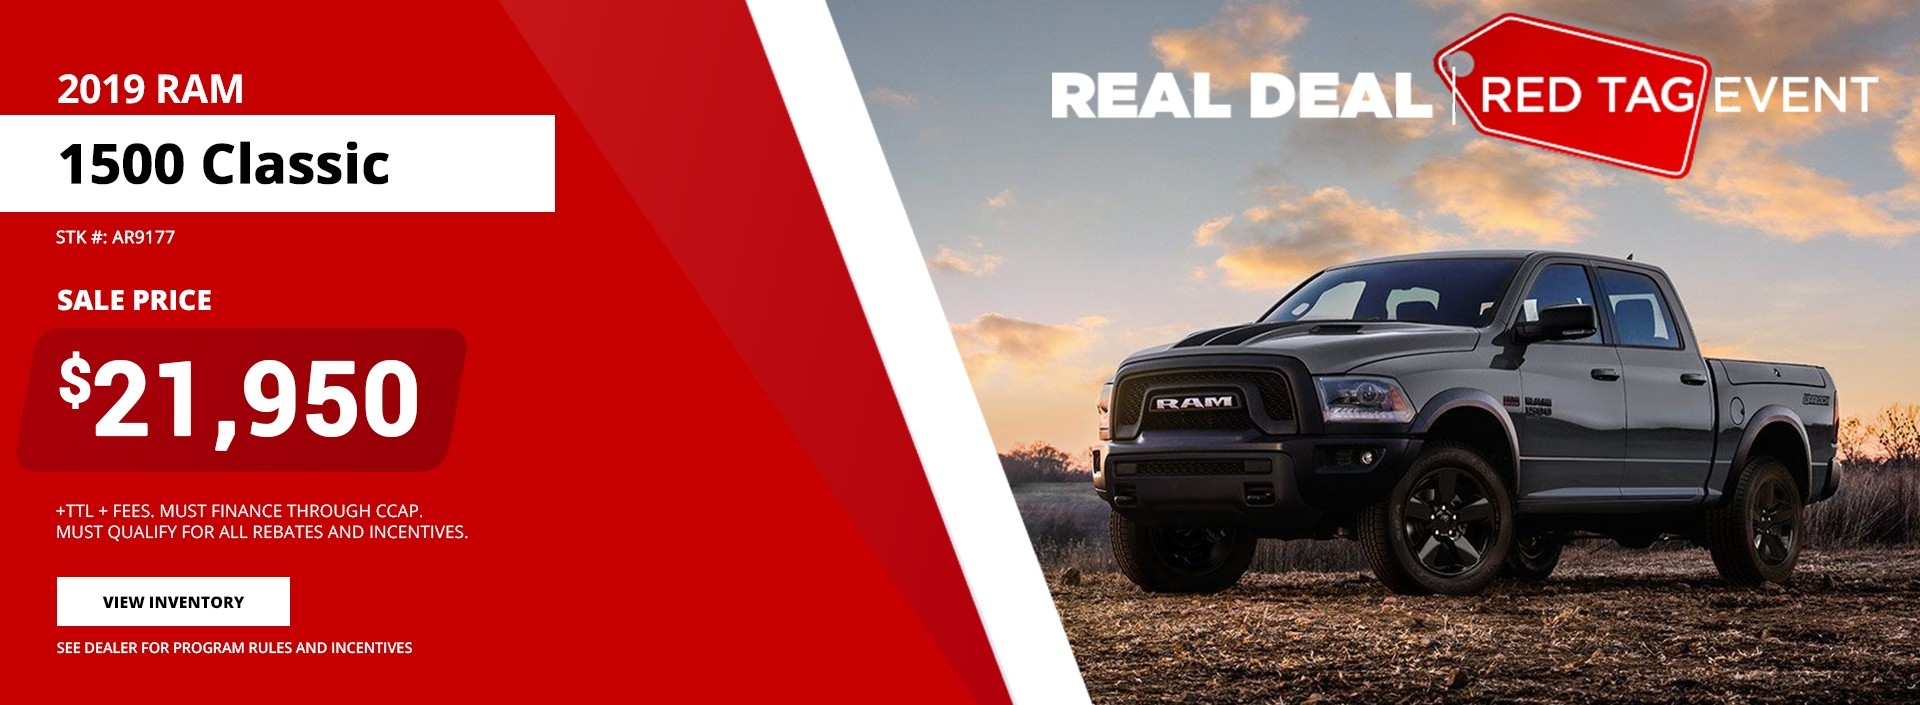 2019 Ram 1500 Classsic - Red Tag Event